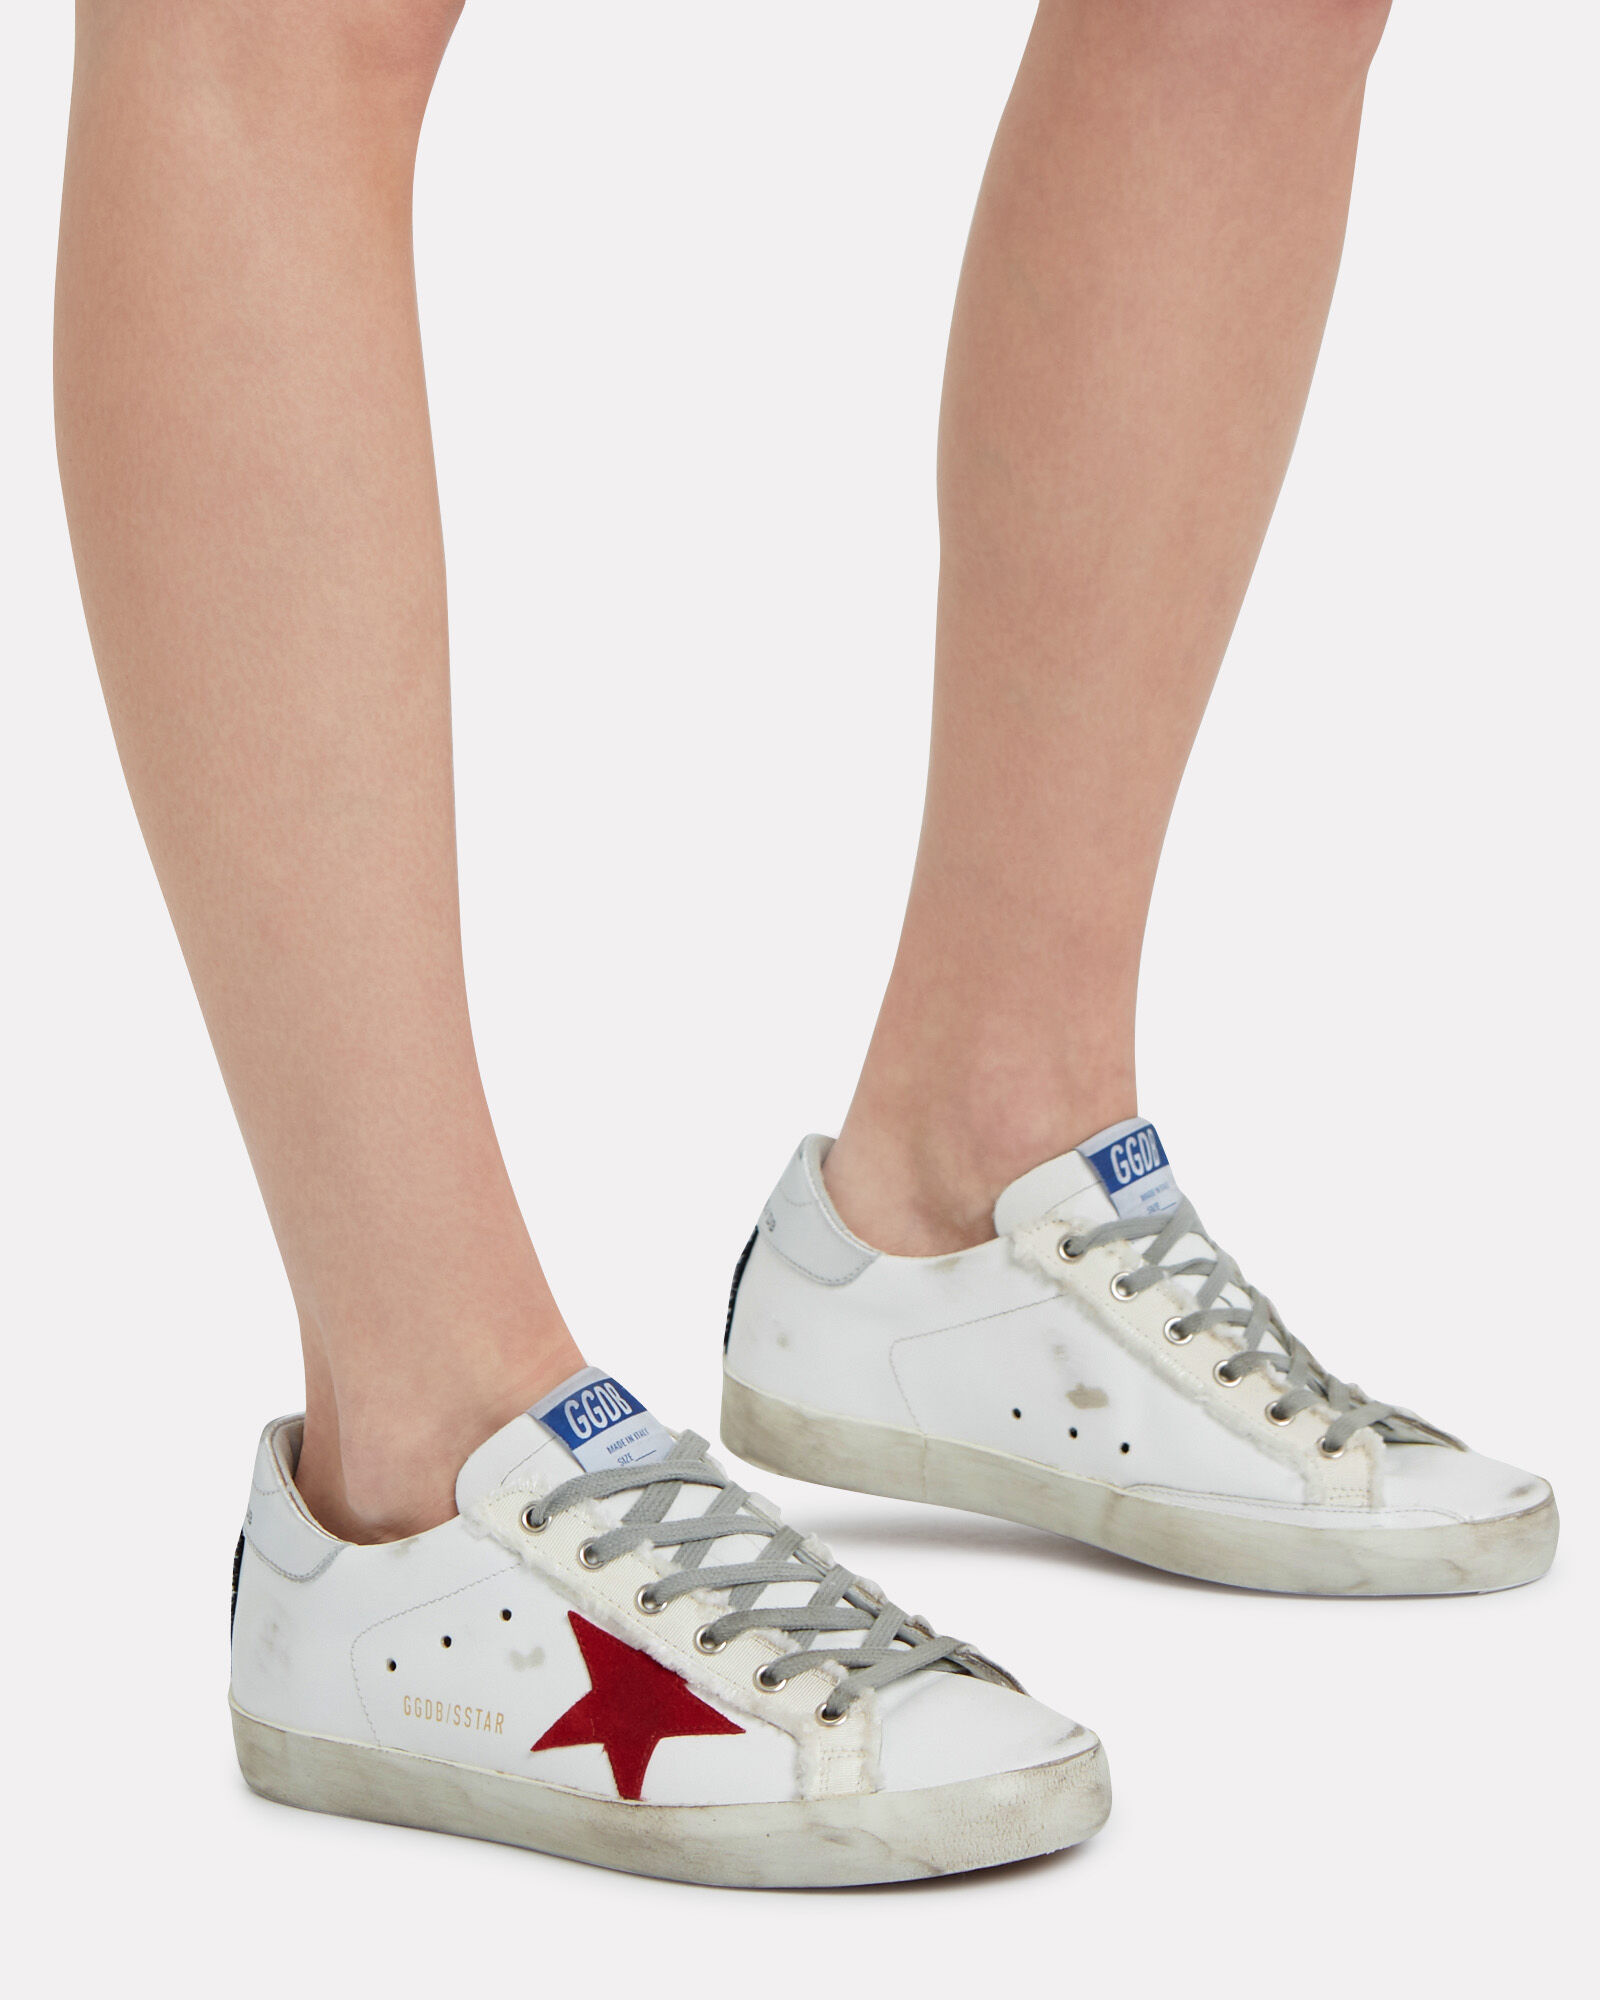 Superstar Leather Low-Top Sneakers, WHITE/RED, hi-res